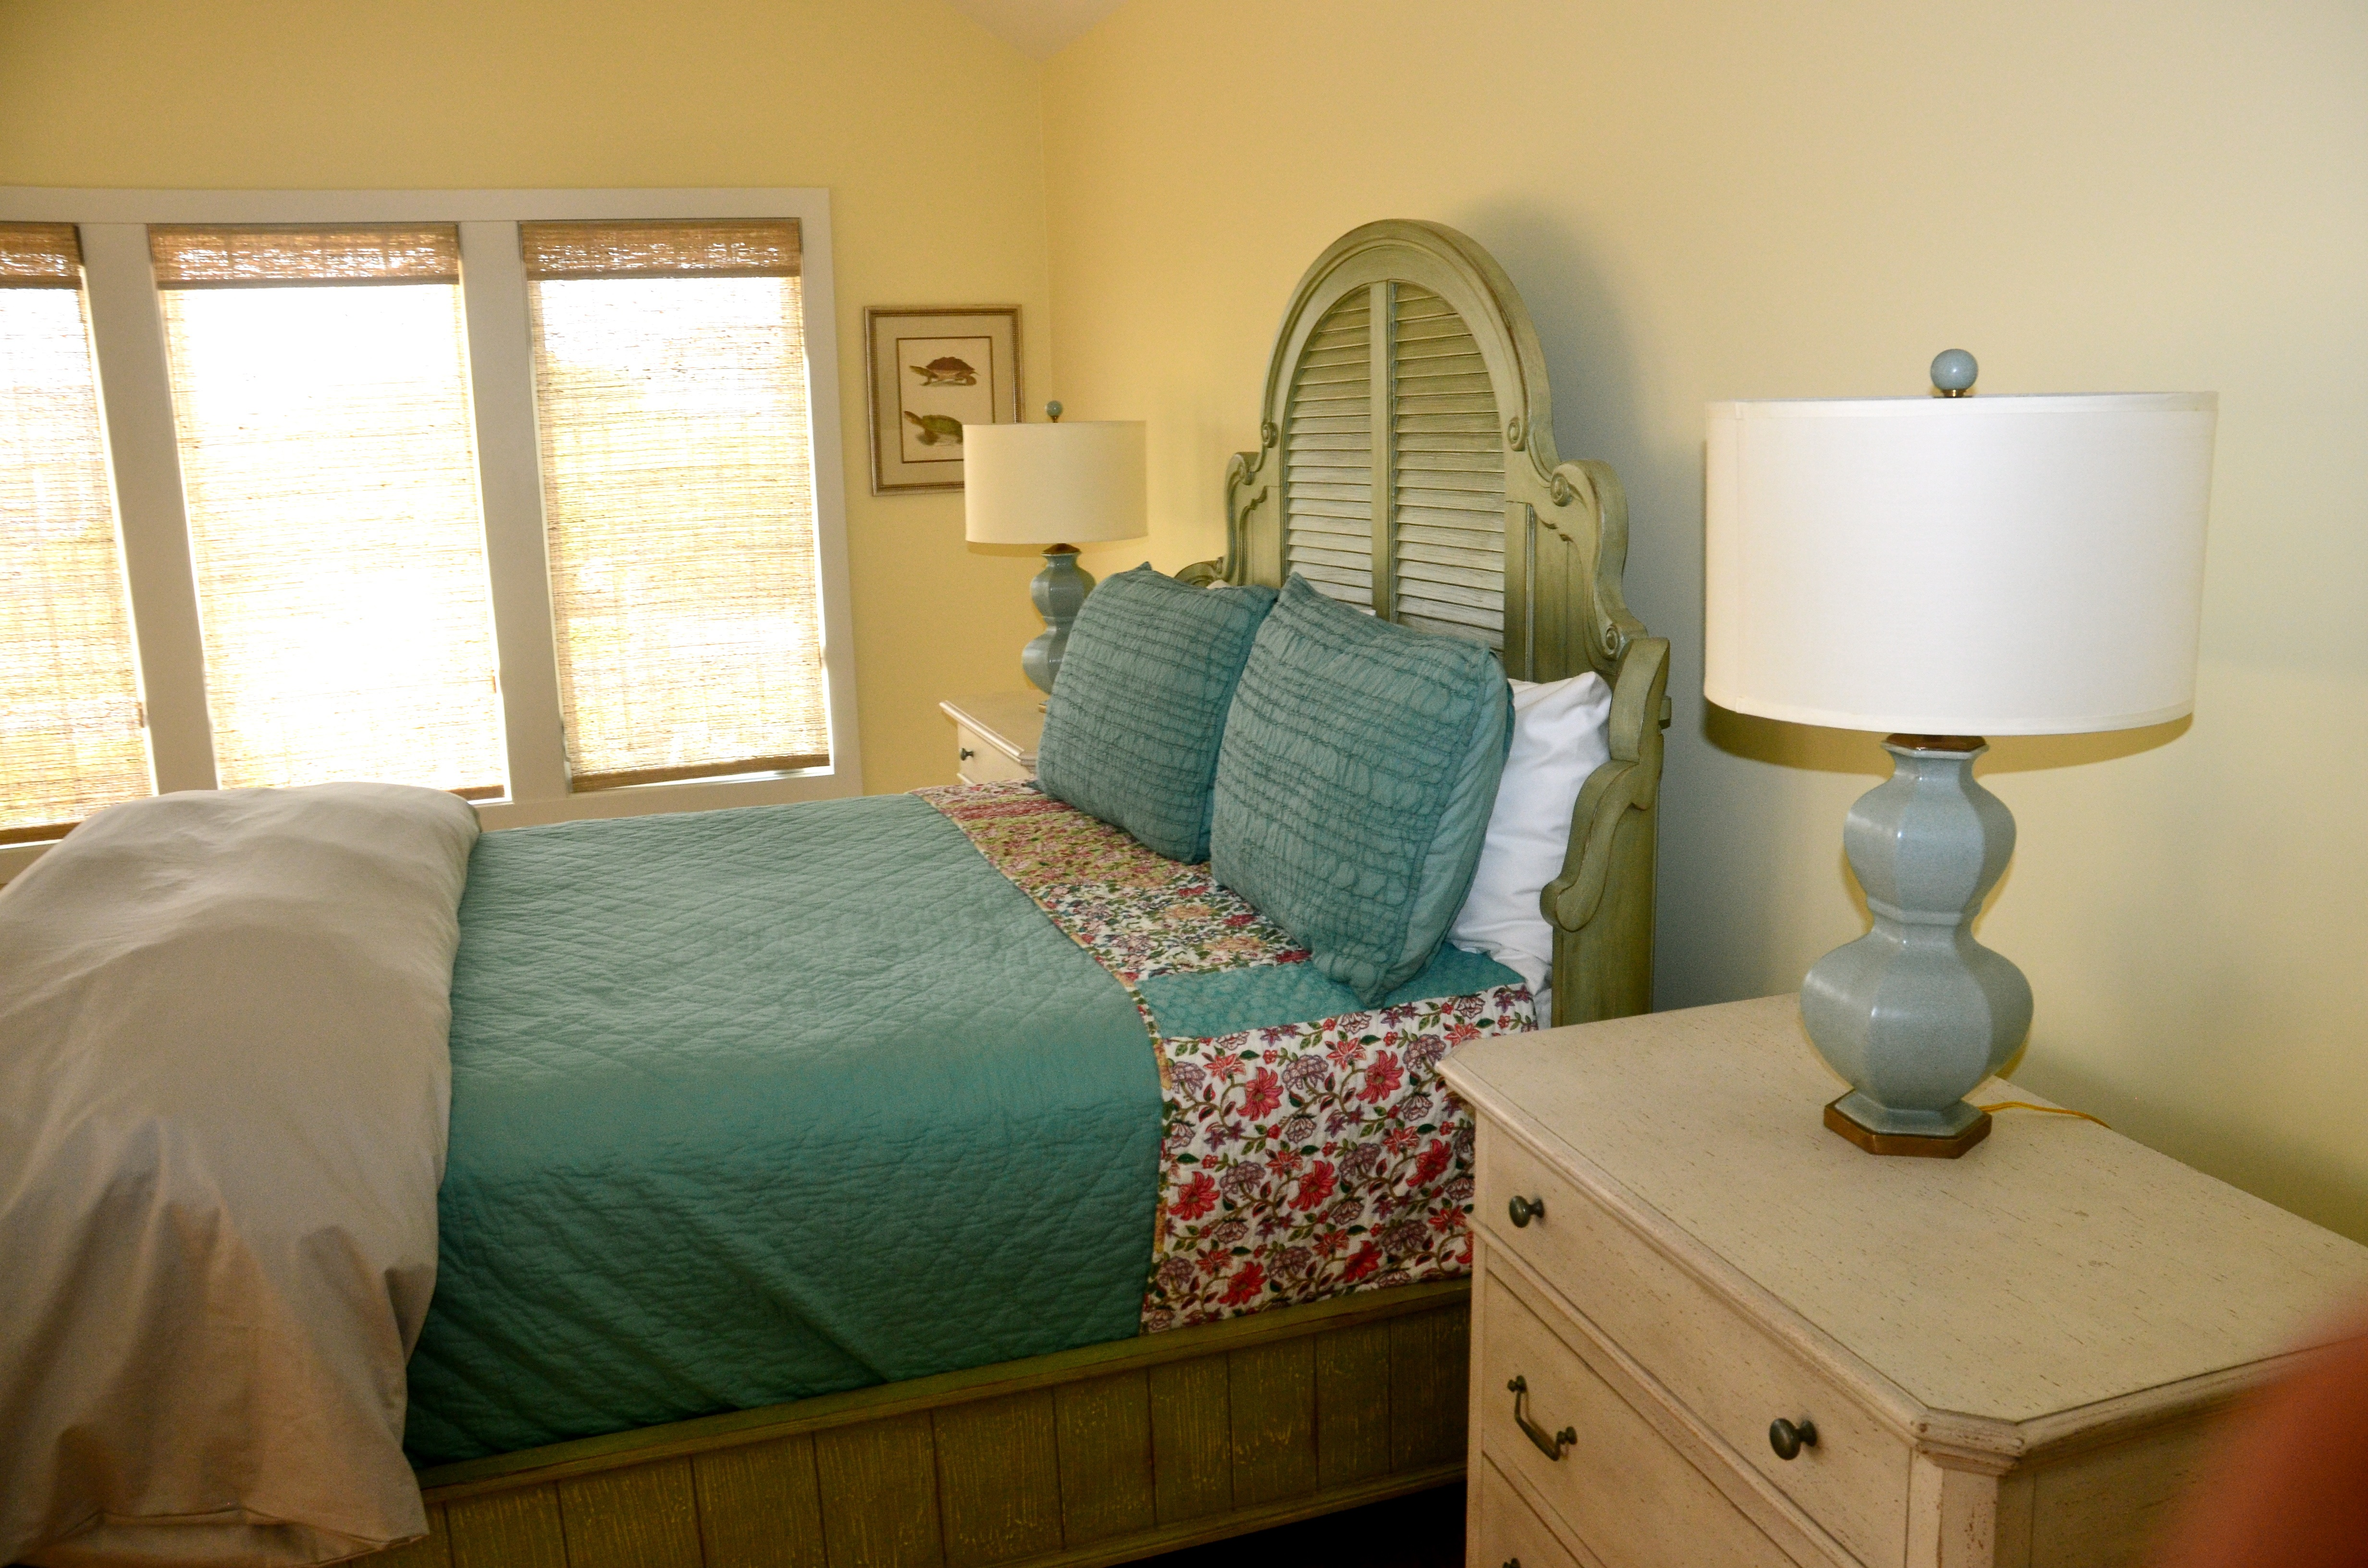 In the 3rd bedroom there are windows that look out to the dunes.